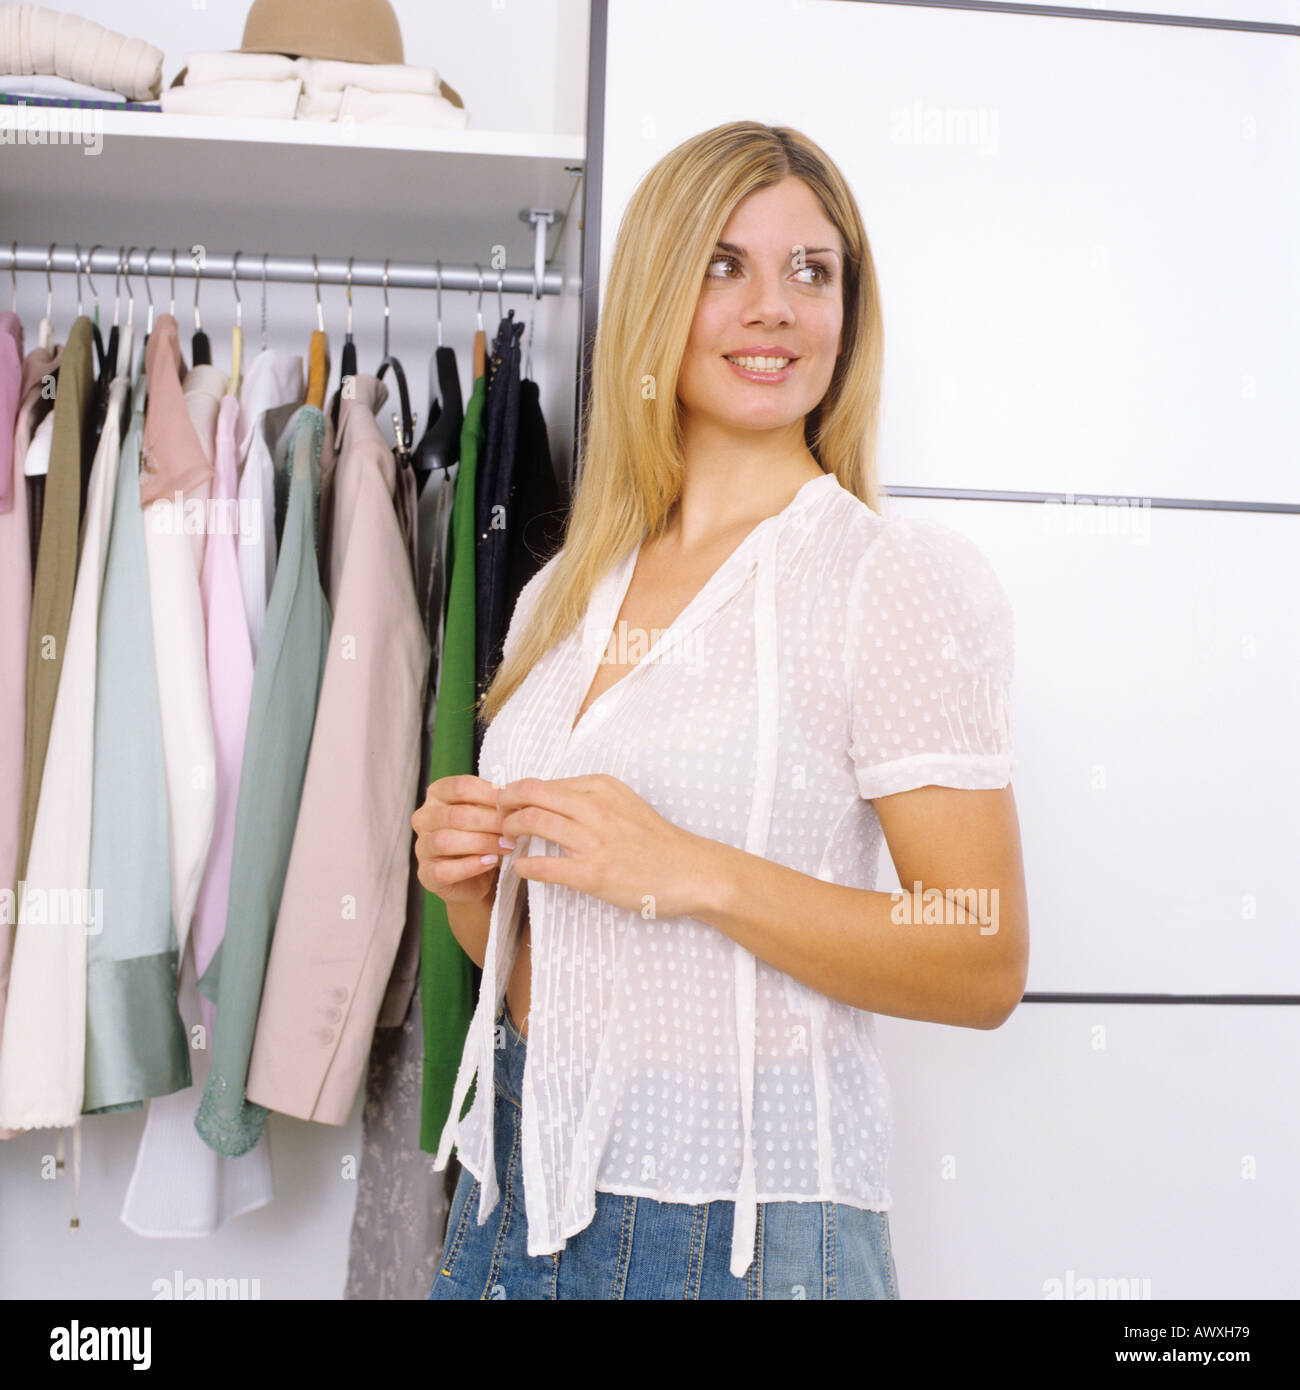 woman getting dressed in white blouse in front of closet